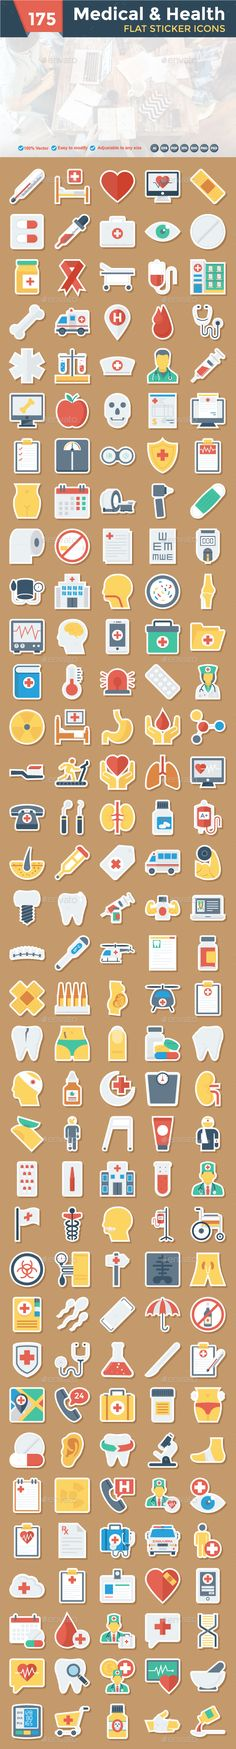 Medical & Health Flat Paper Icon Design Template - Icons Design Template PSD, AI Illustrator. Download here: https://graphicriver.net/item/medical-health-flat-paper-icon/19374062?ref=yinkira